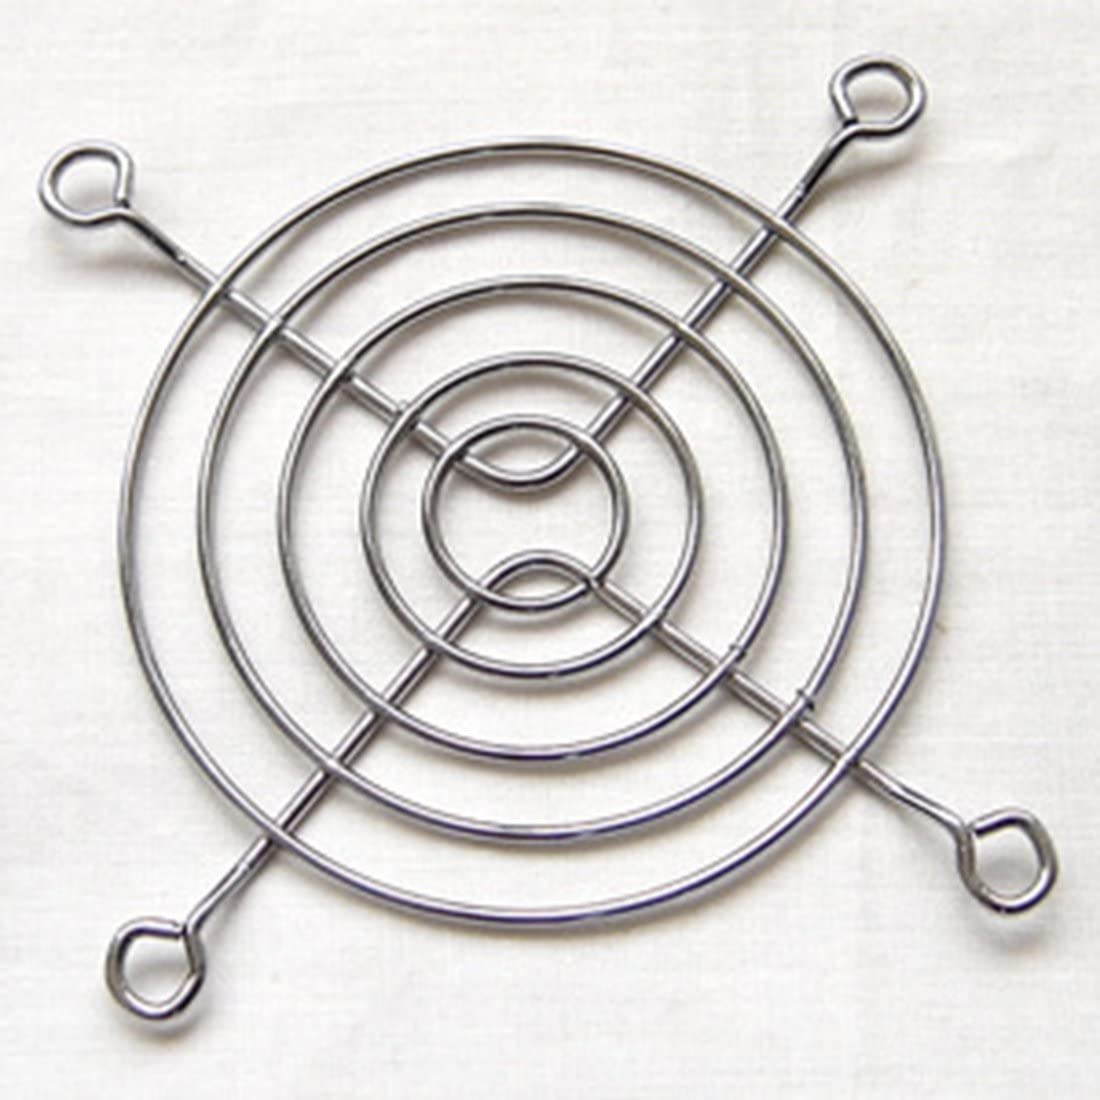 NA Axial Fan Grill Guard 12 cm Metal Finger Guards Pack of 5